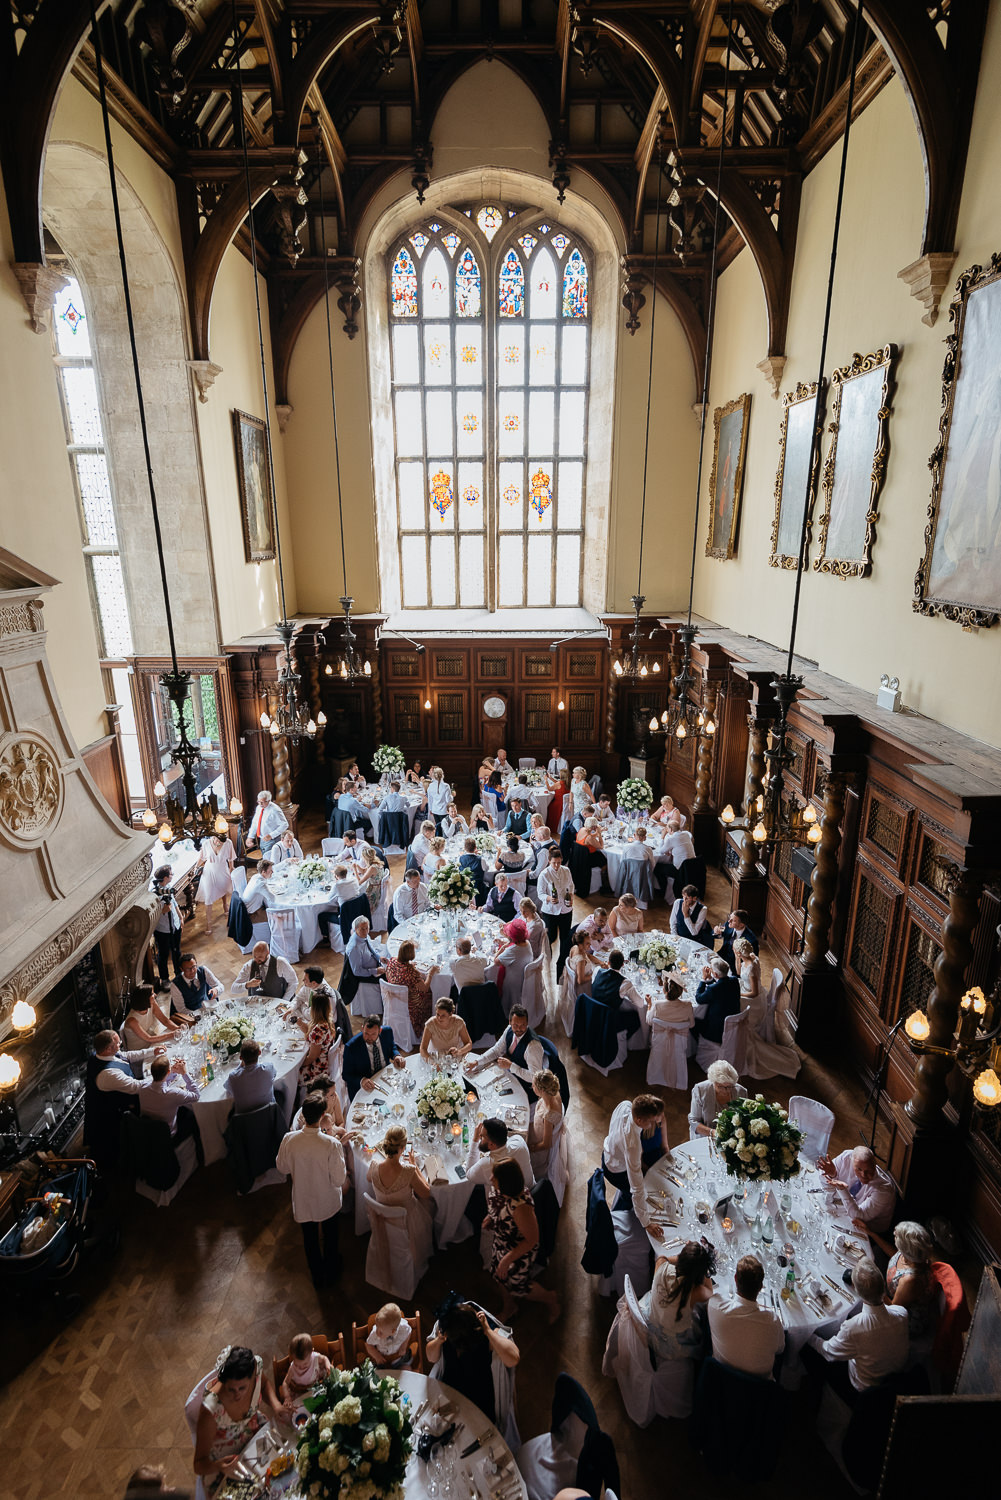 The great hall at burghley house